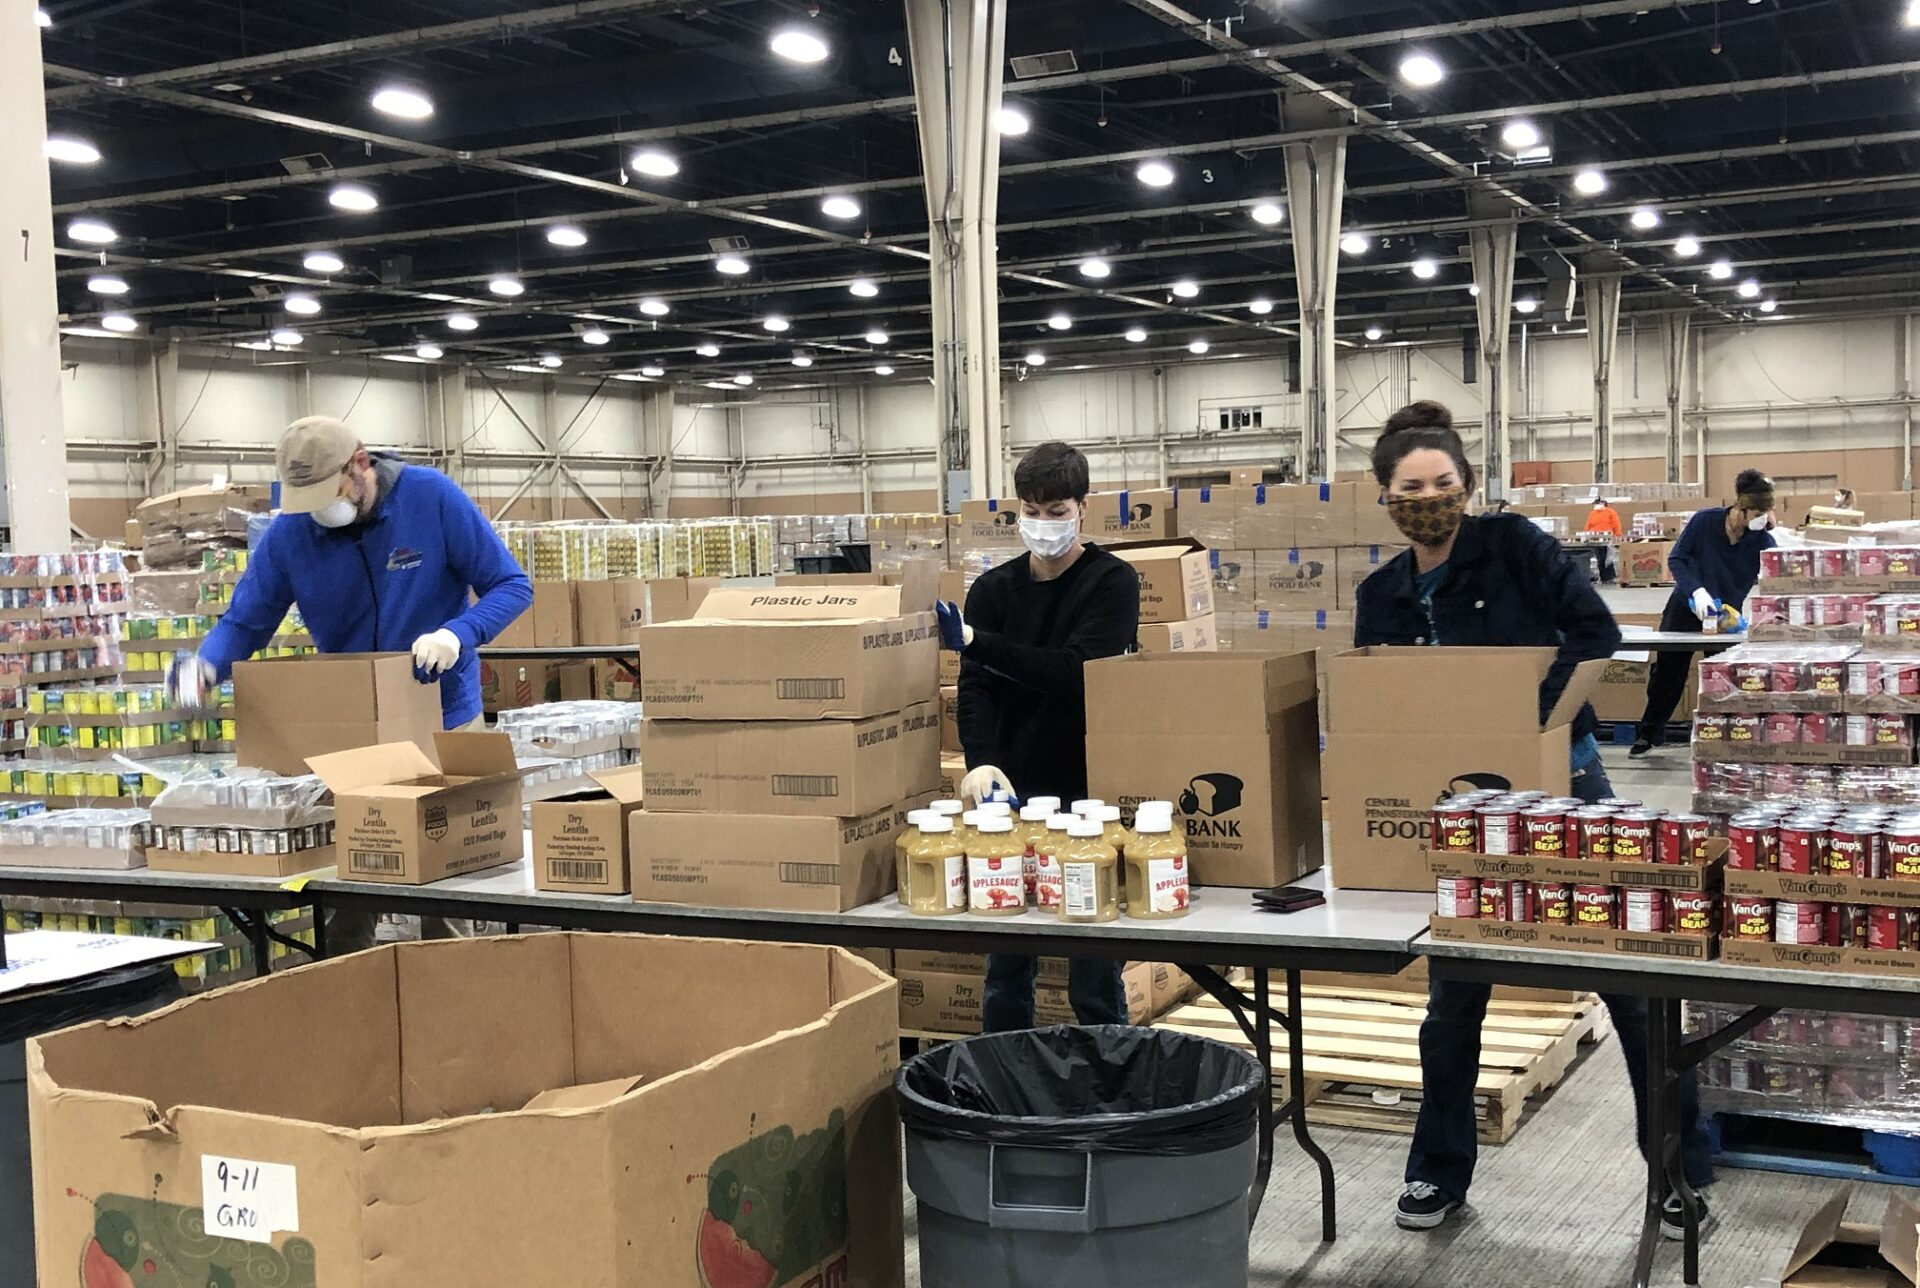 Volunteers pack boxes at the Central PA Food Bank distribution hub at the Farm Show complex. (Photo: Provided)